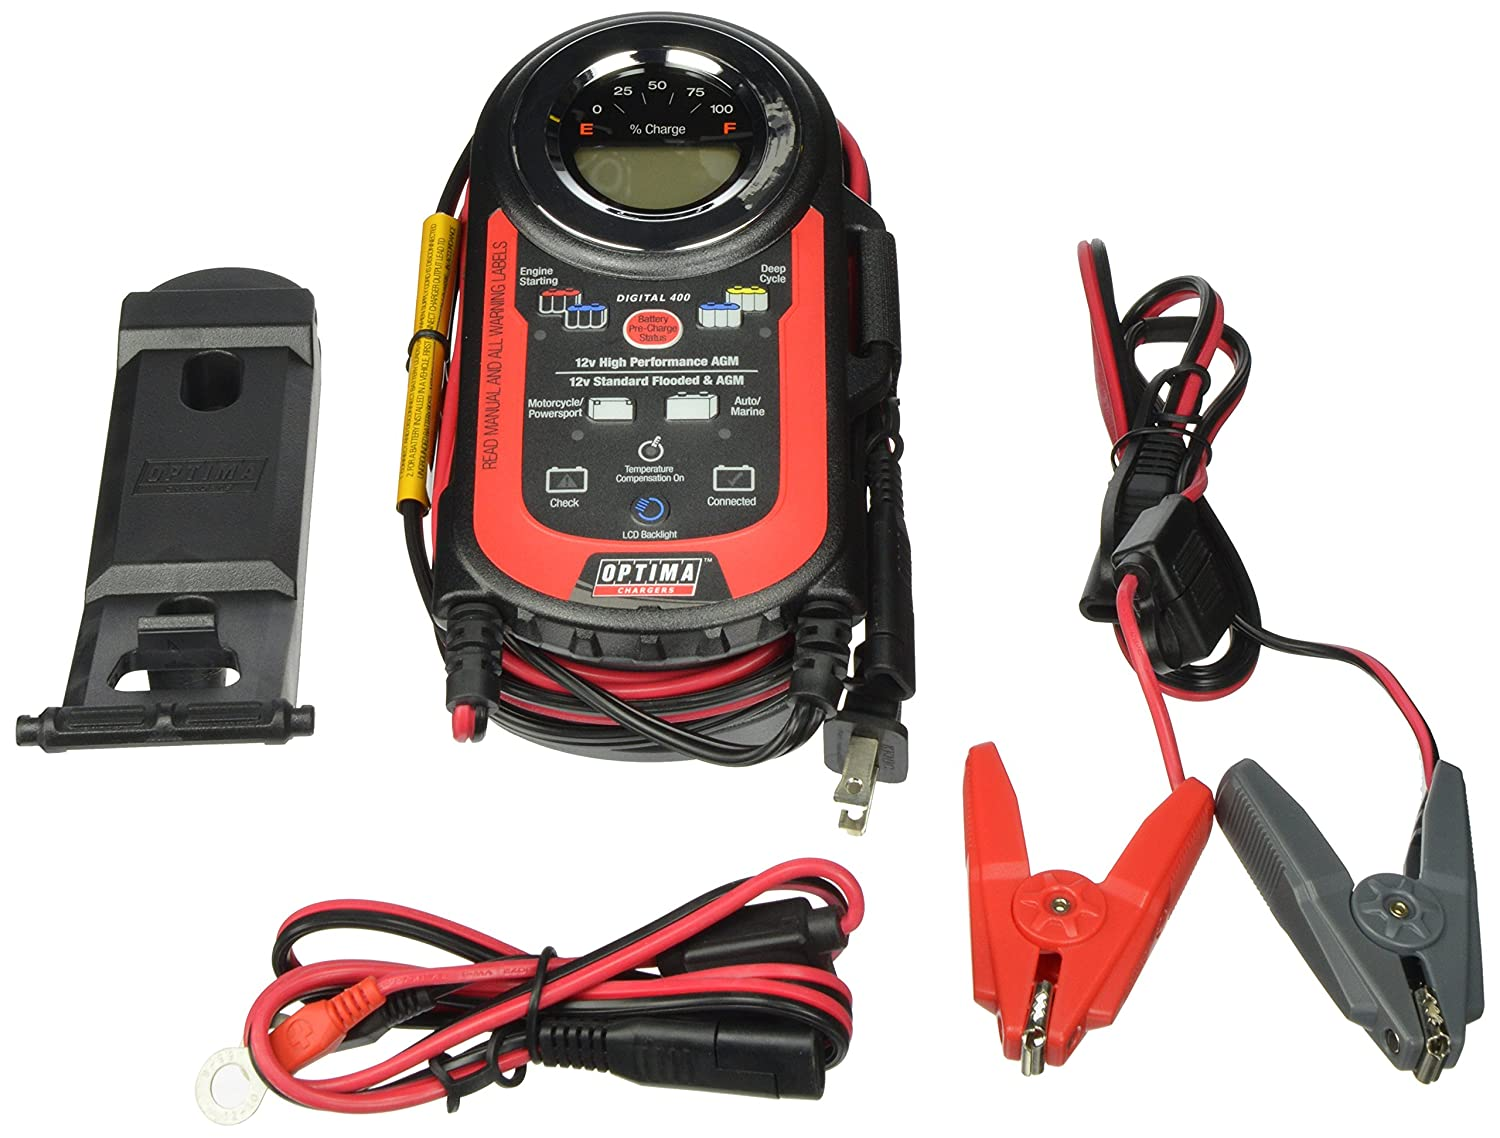 acdelco battery charger i-7011 manual